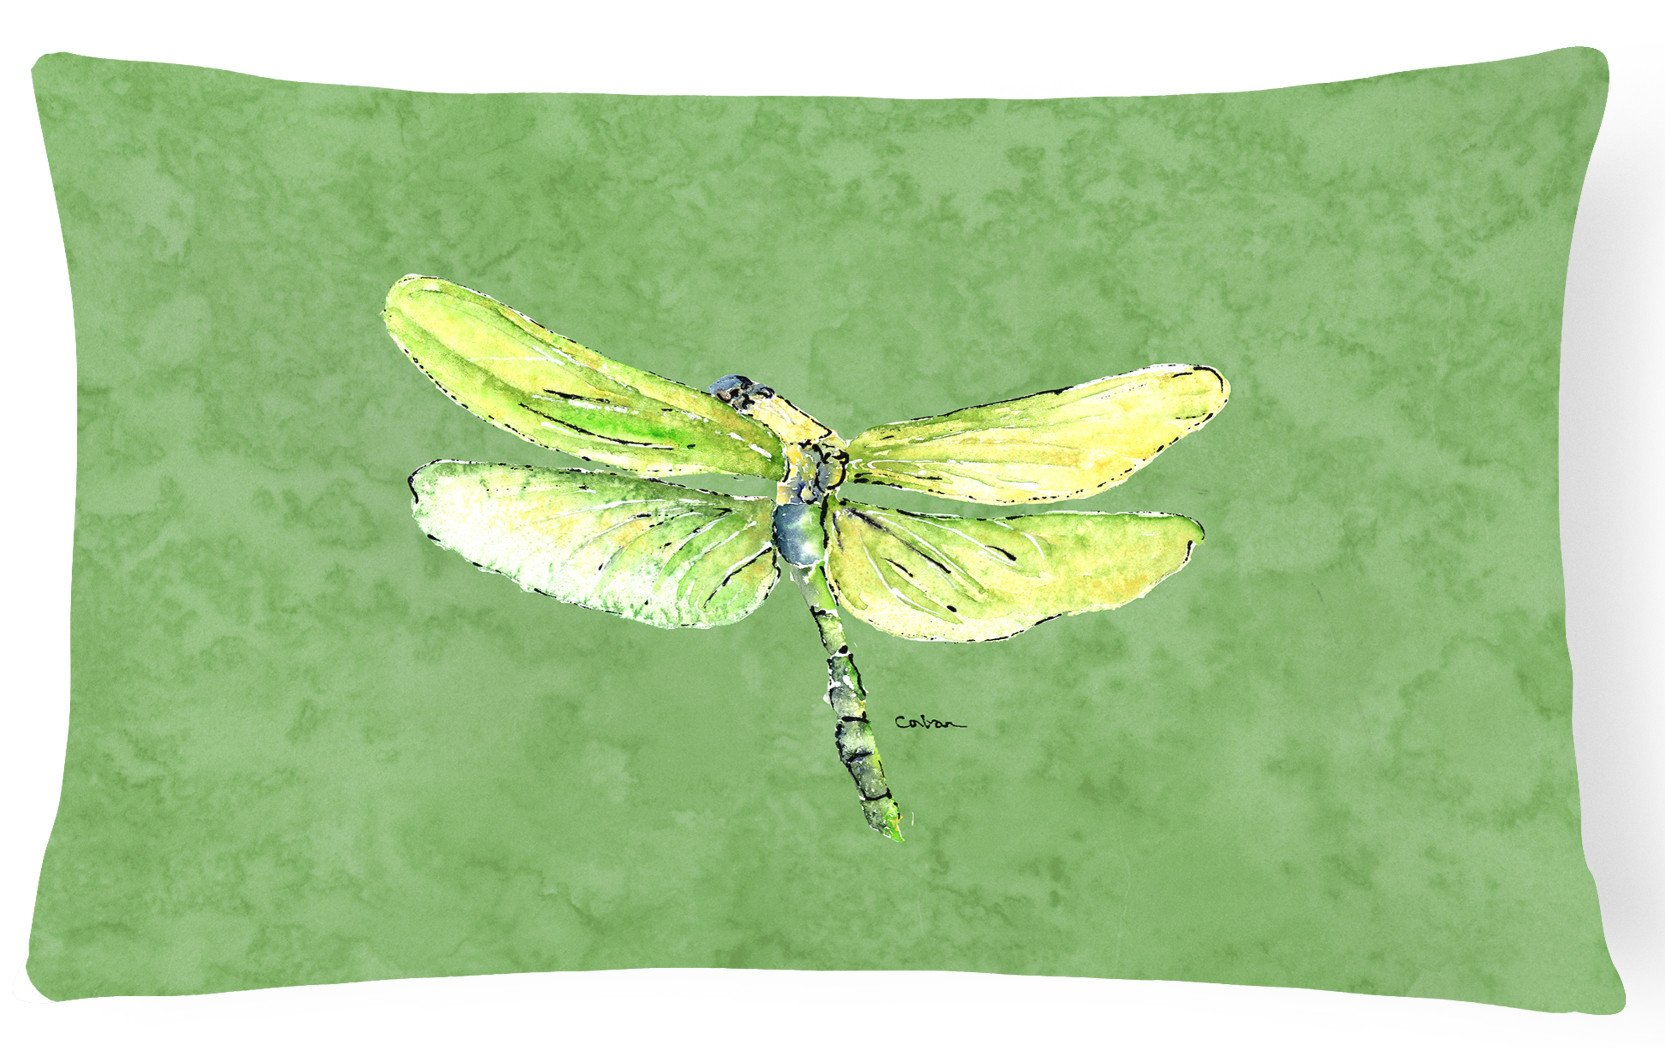 Dragonfly on Avacado   Canvas Fabric Decorative Pillow by Caroline's Treasures